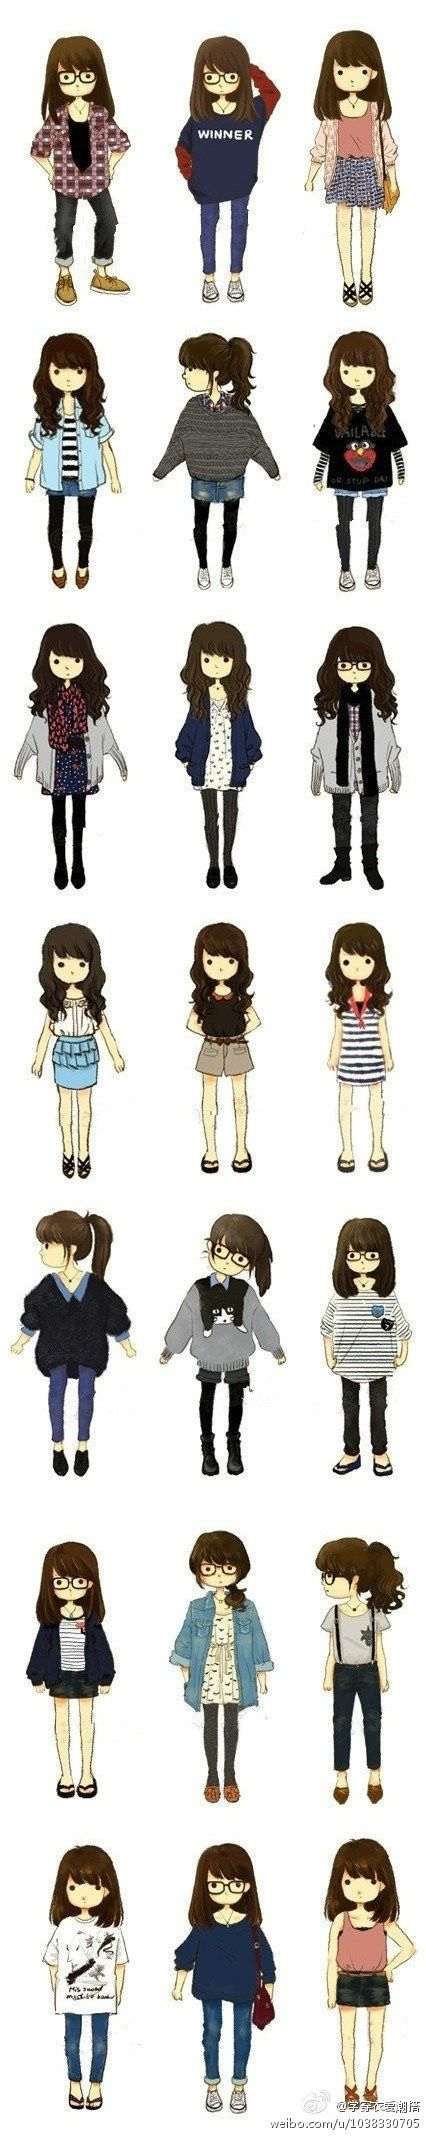 Wanna try these outfits